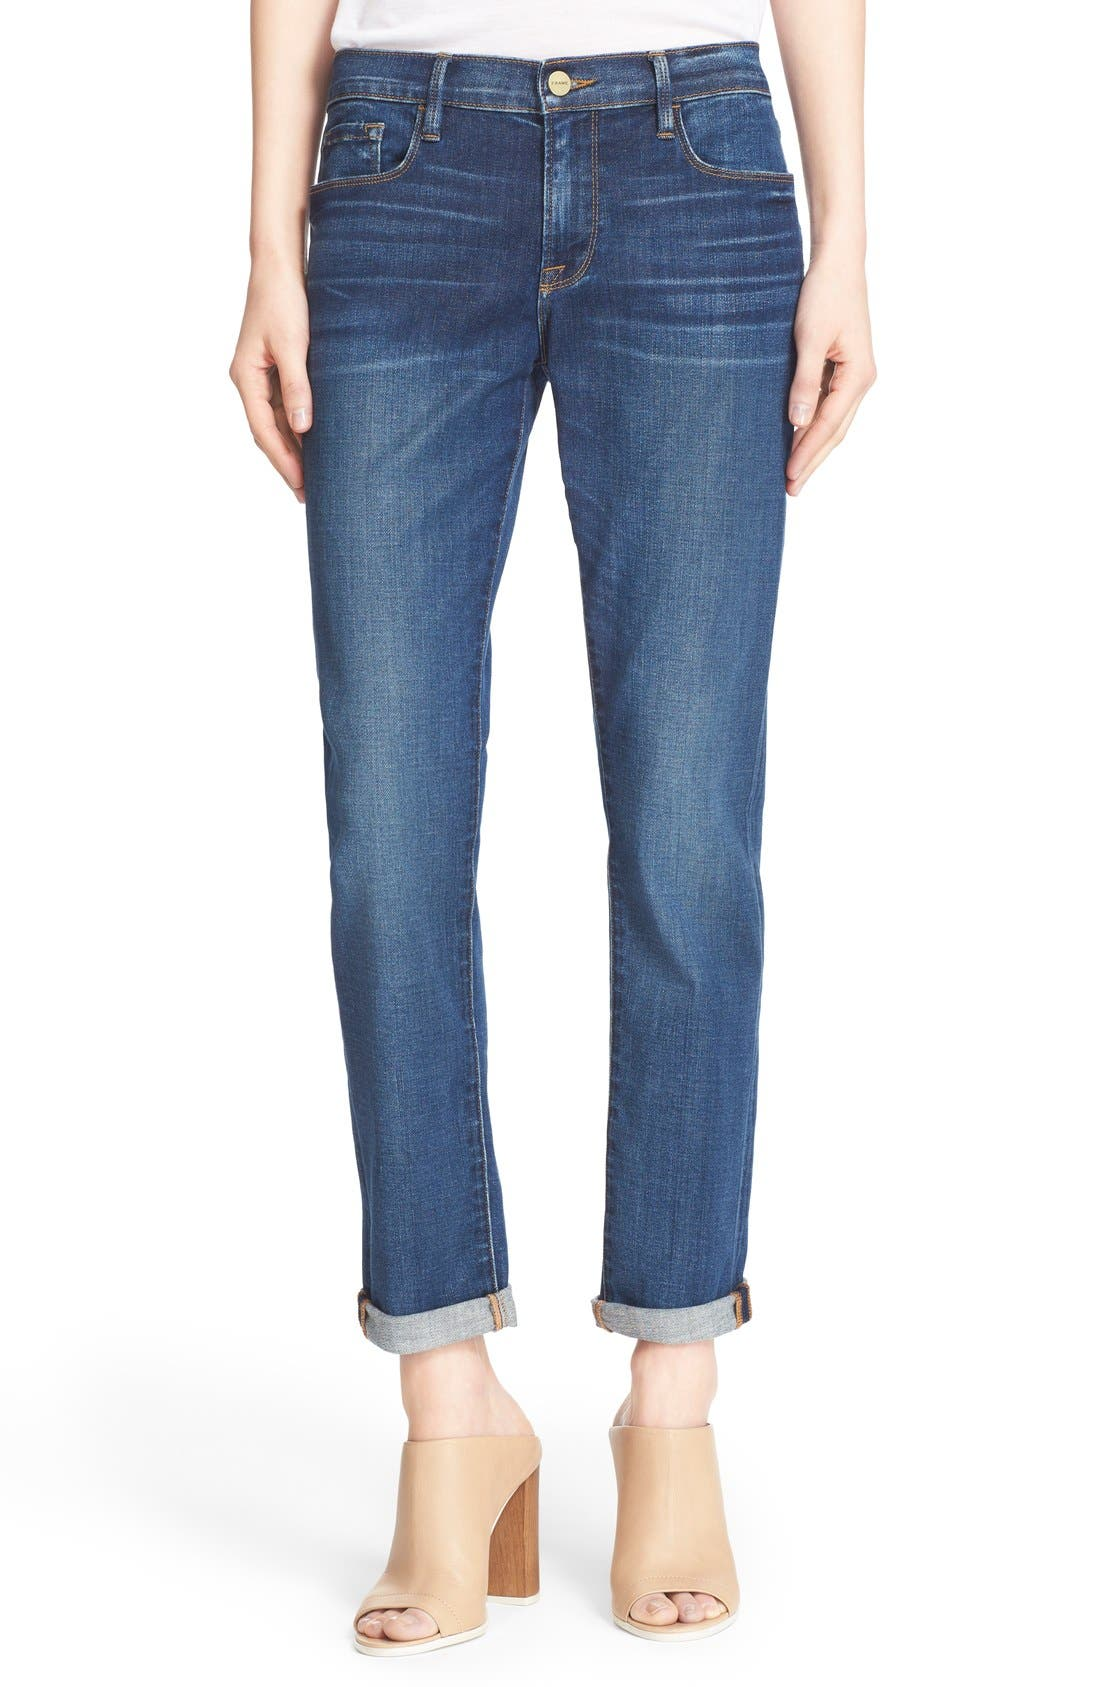 Boyfriend Jeans for Women | Nordstrom